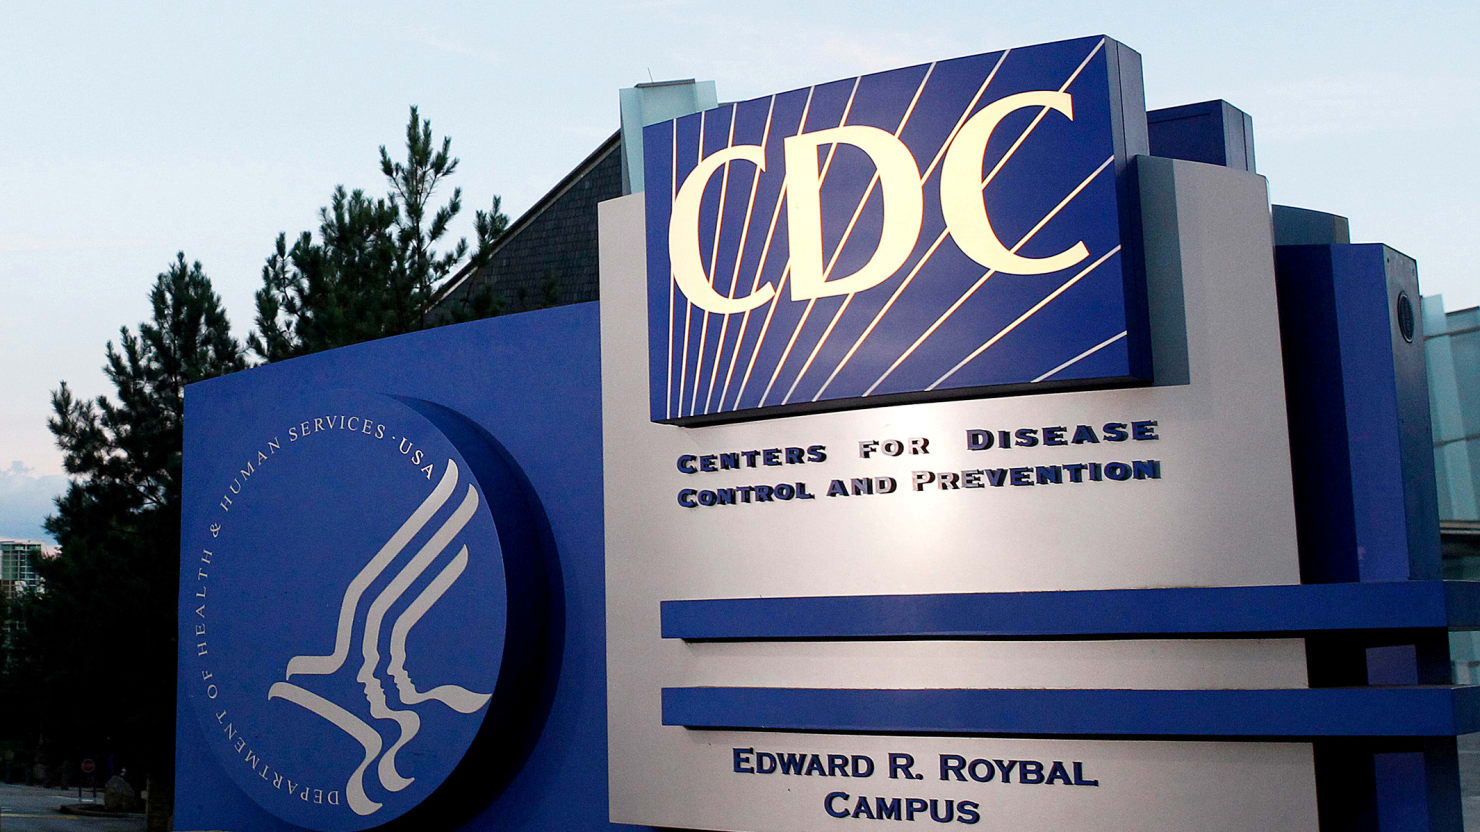 Emails Show How the Trump Administration Tried to Silence CDC Scientists: NYT